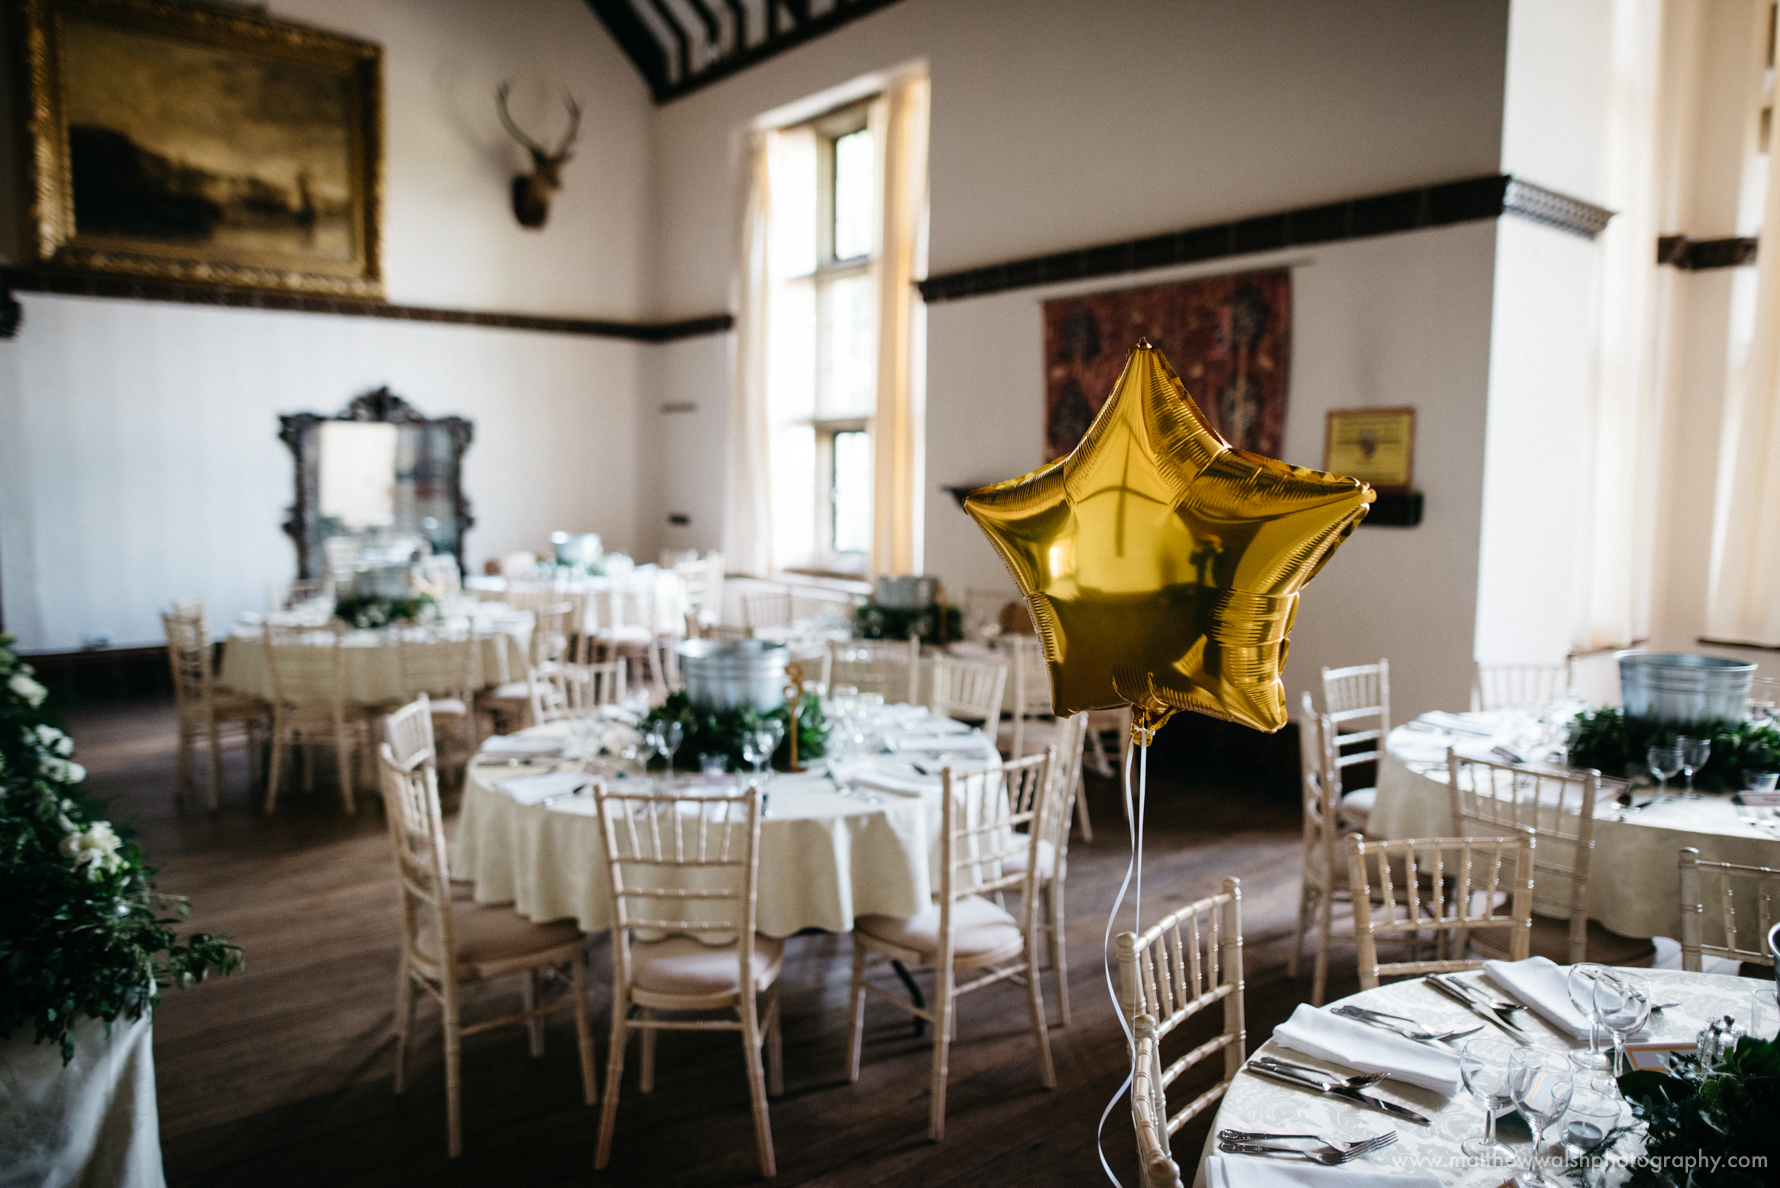 A gold balloon sits in the Edwardian grand hall